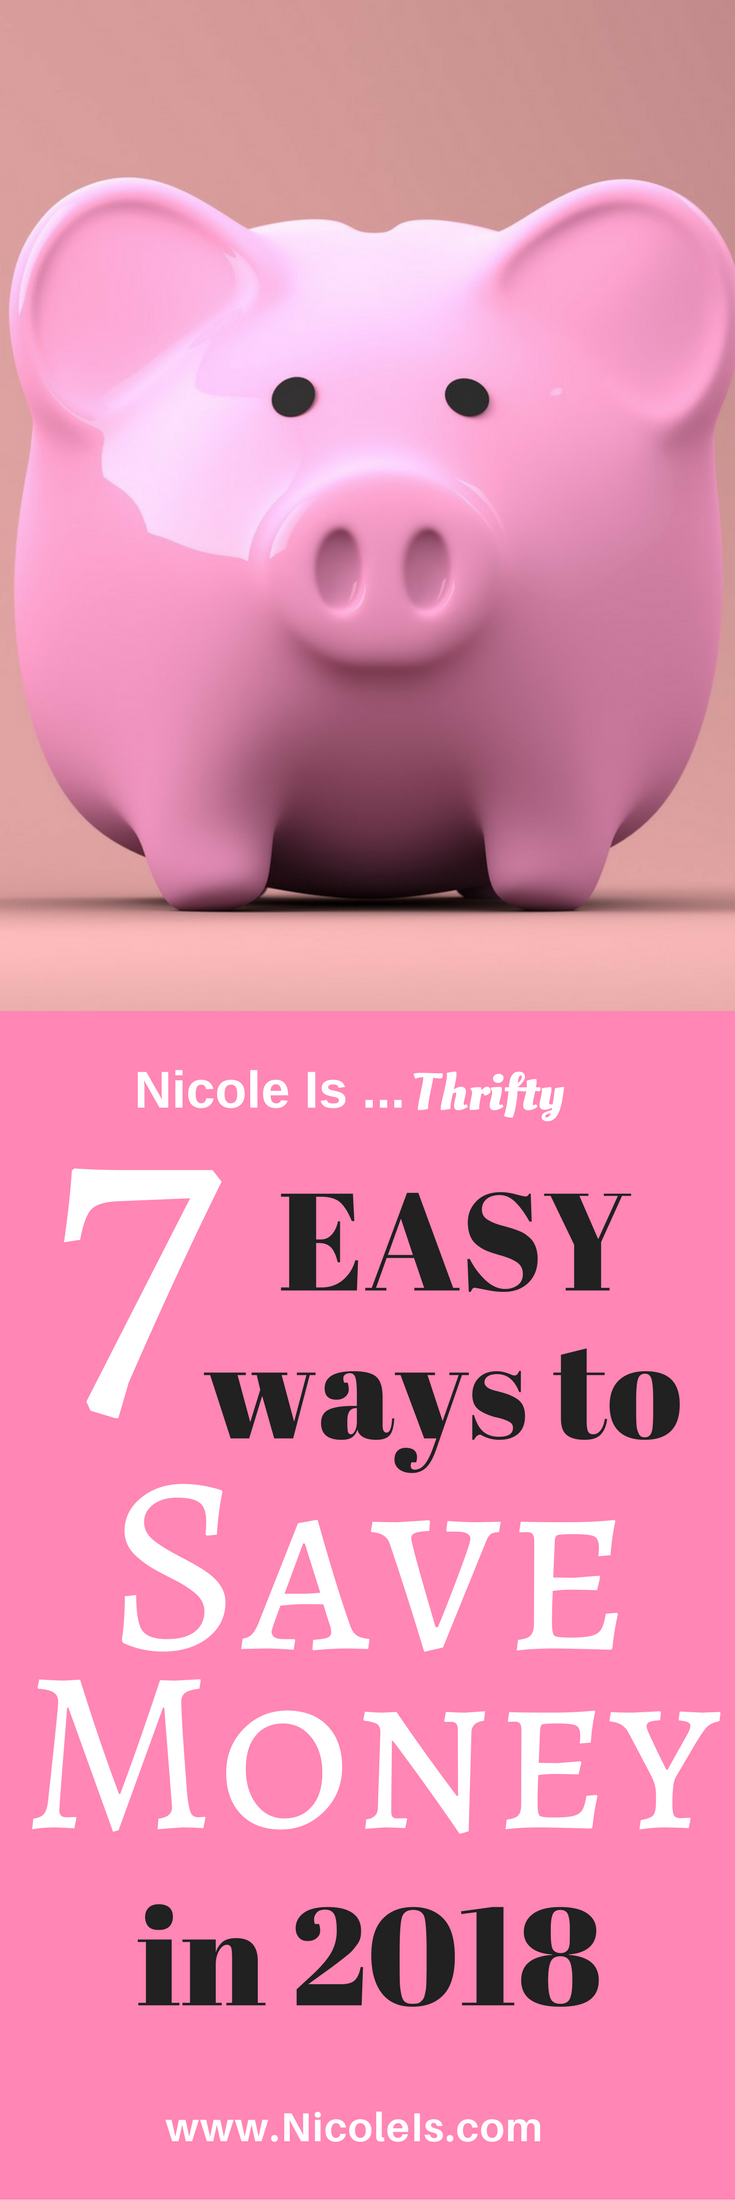 7 Easy Ways to Save Money in 2018 | Nicole Is Thrifty | www.NicoleIs.com | Money Saving Tips | Money Saving Apps | Thrift Living | Living on a Budget | How to Save Money |